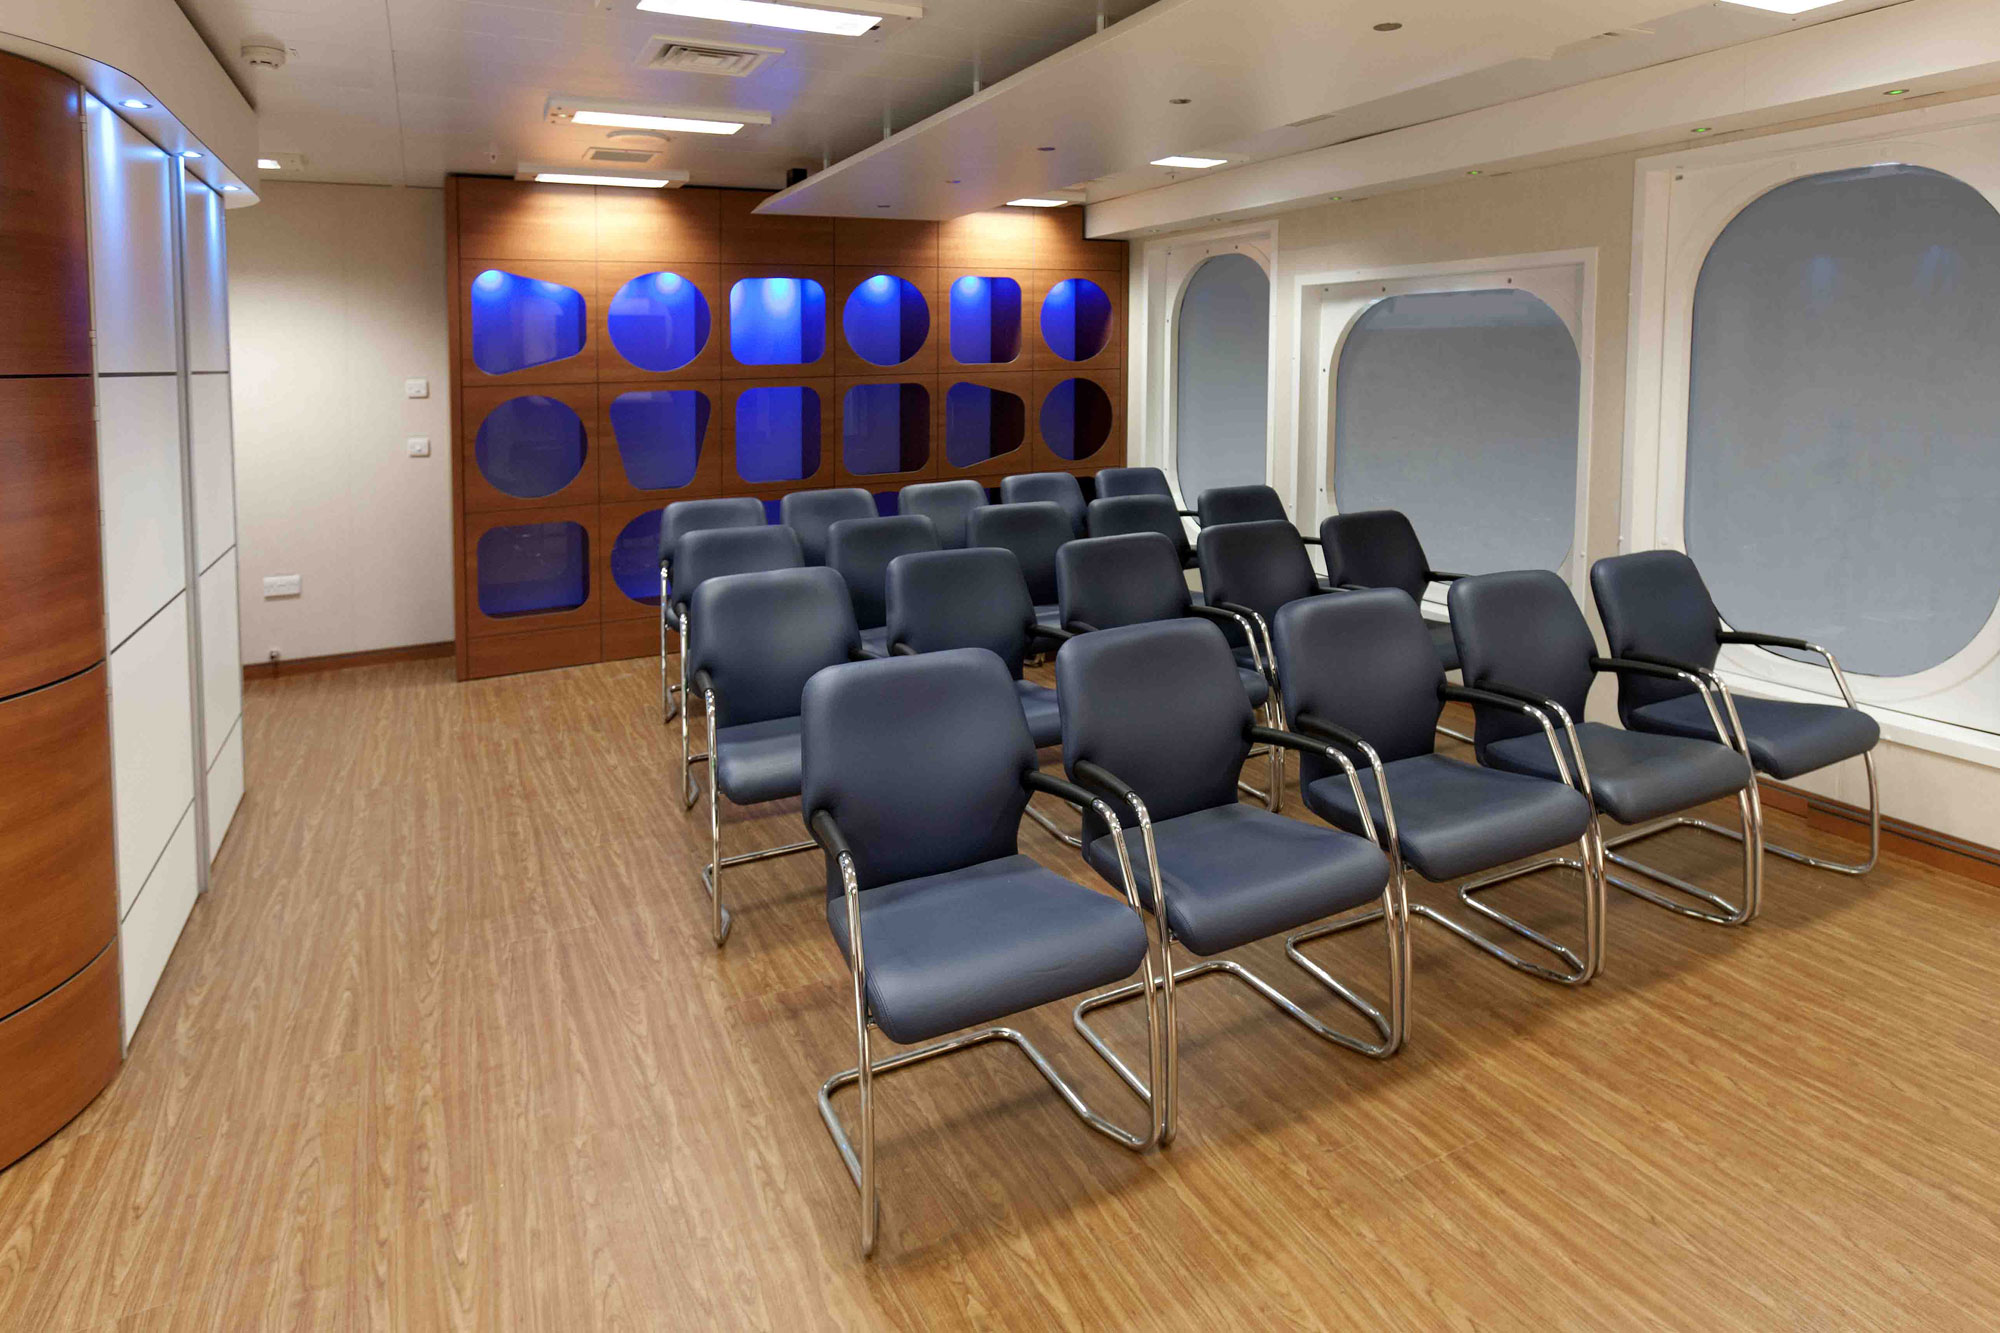 Office Areas, Receptions, Control Rooms & Heli Admin Lounges Second